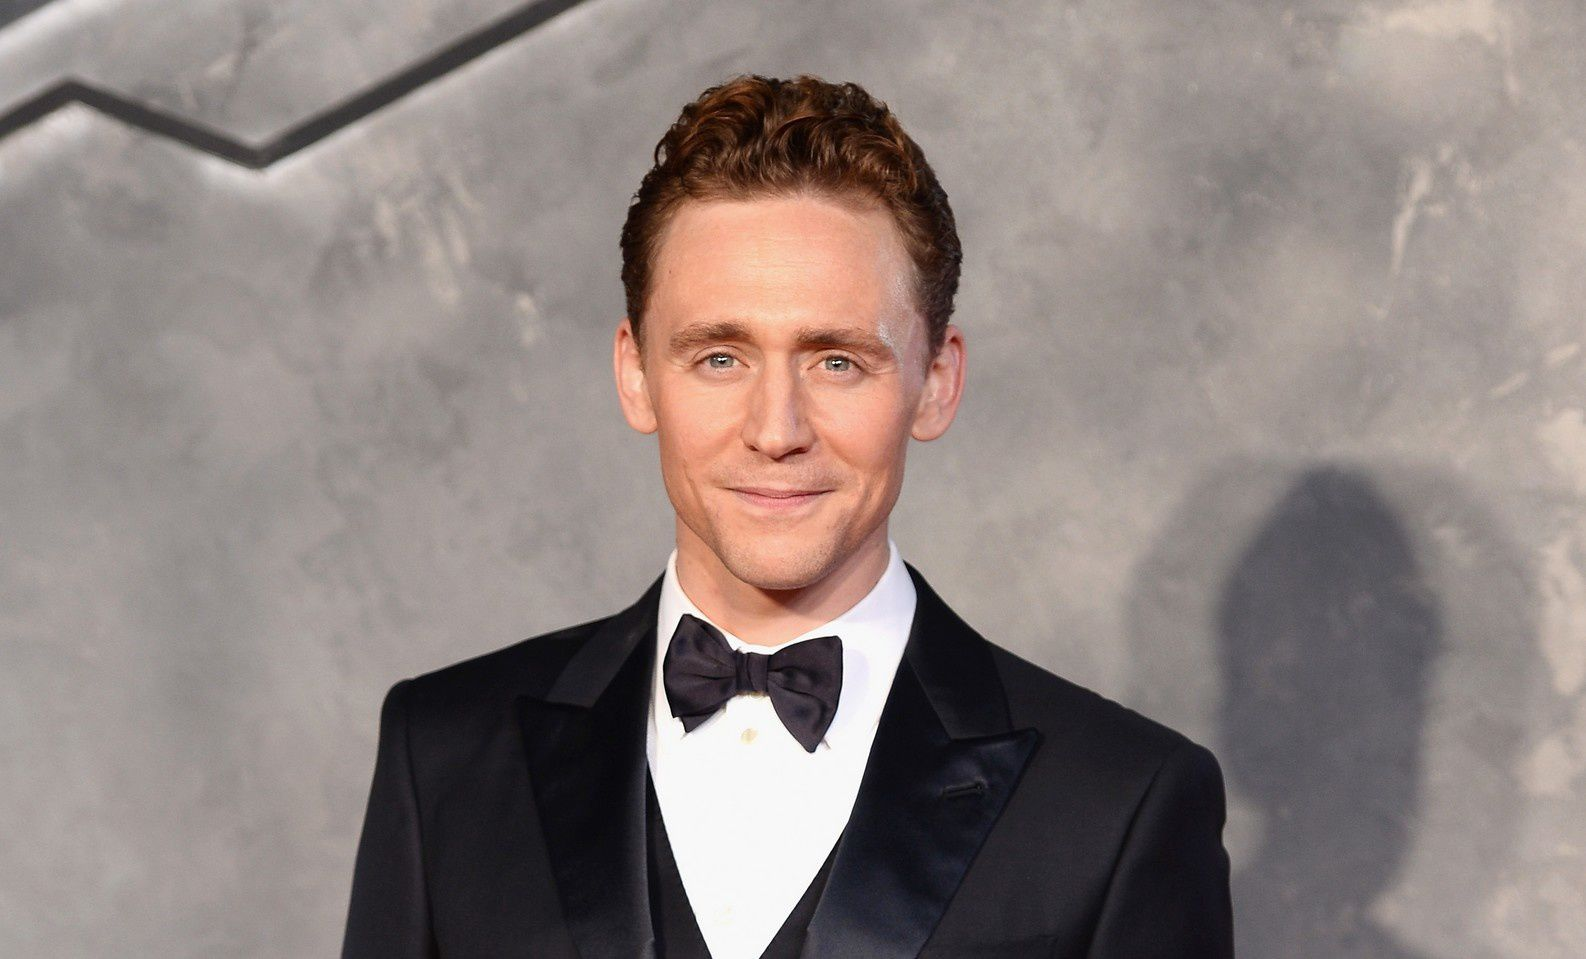 Tom Hiddleston en premier rôle de Ben-Hur ?